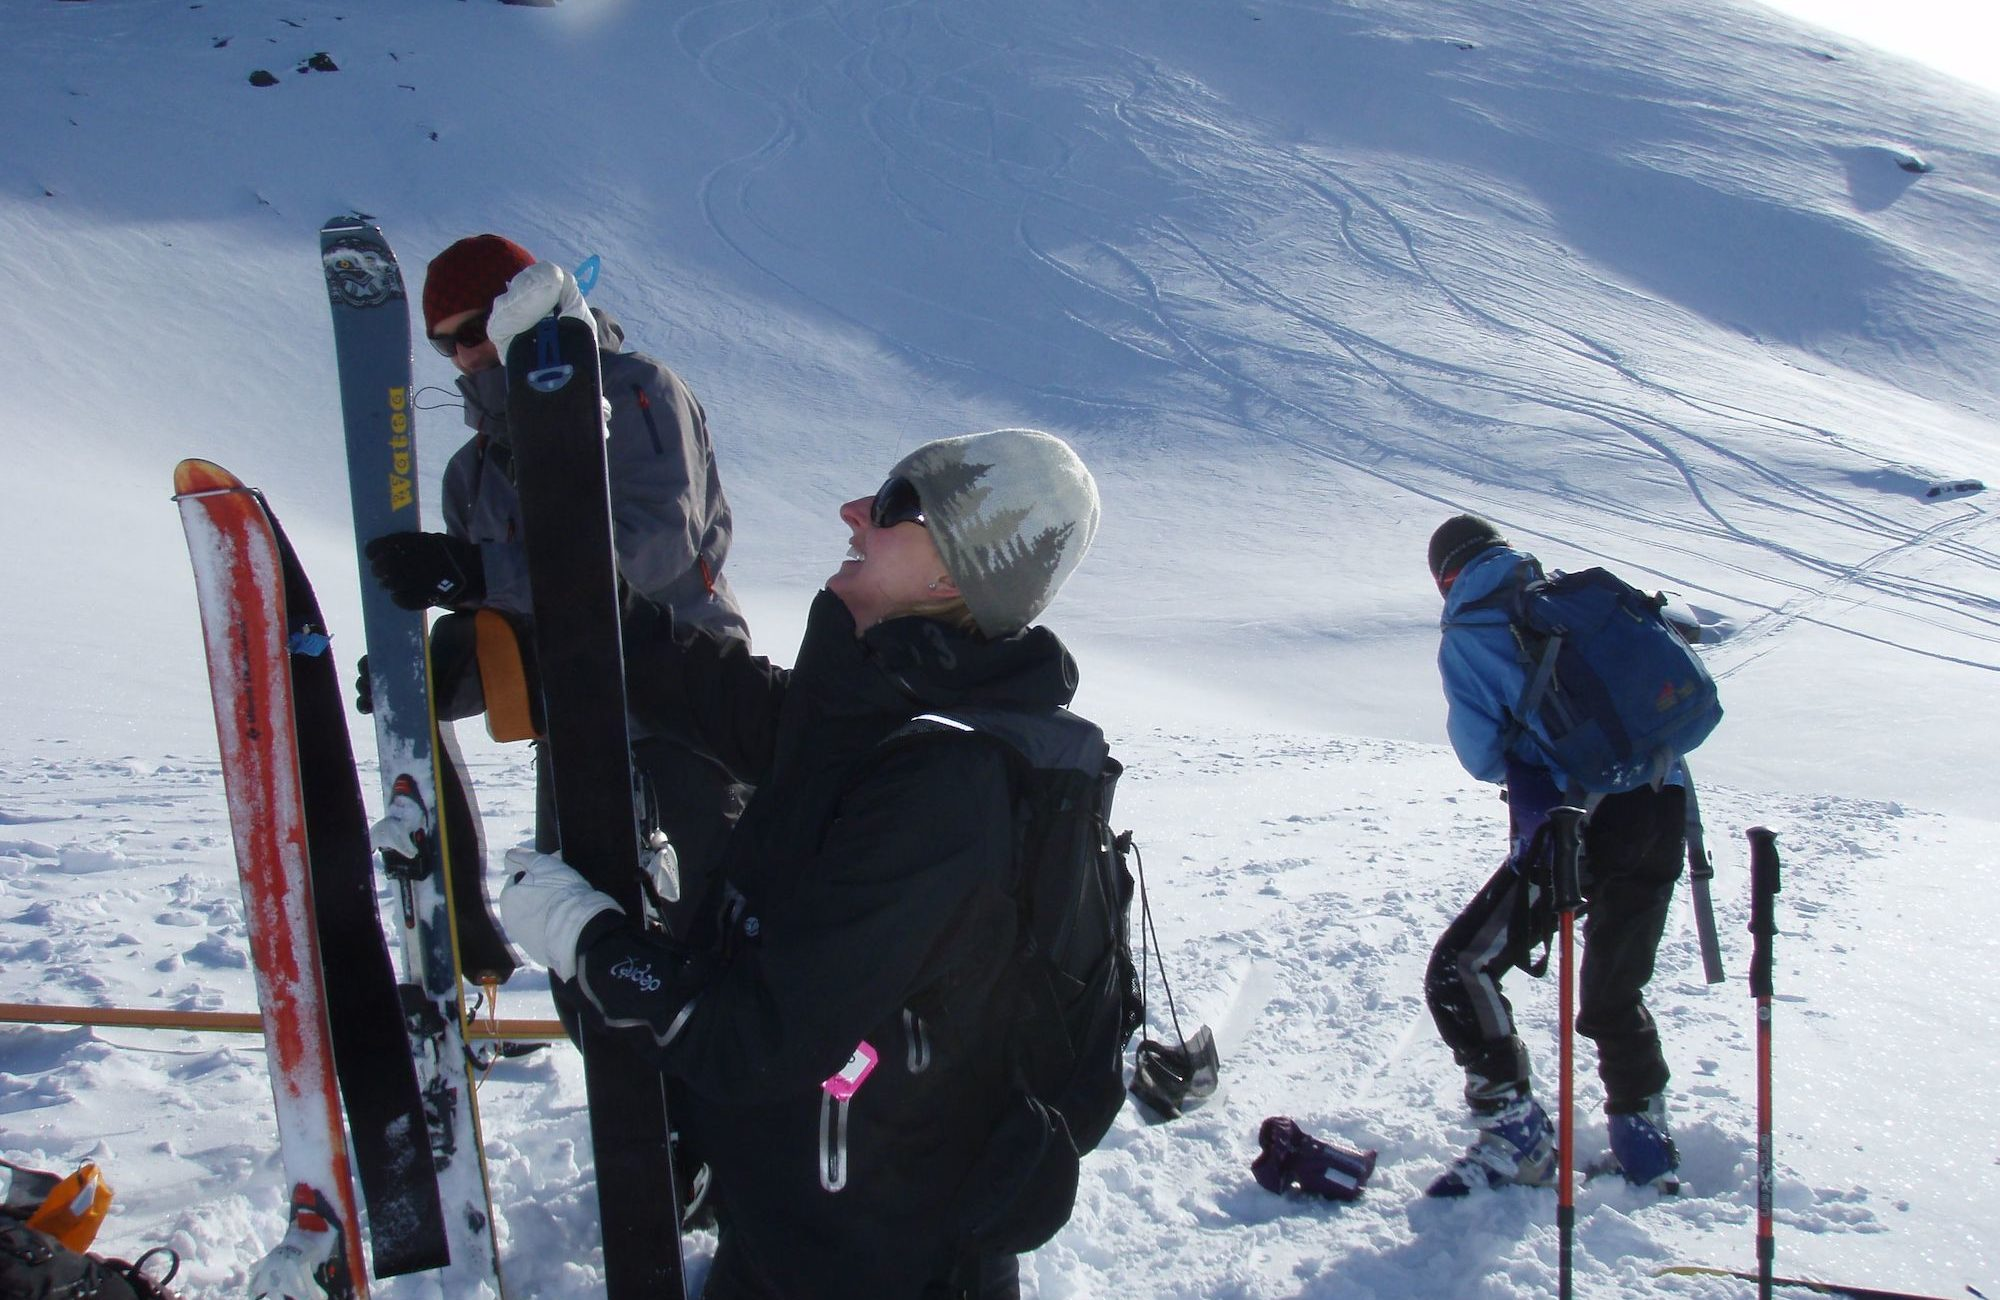 Peeling off skins for ski touring